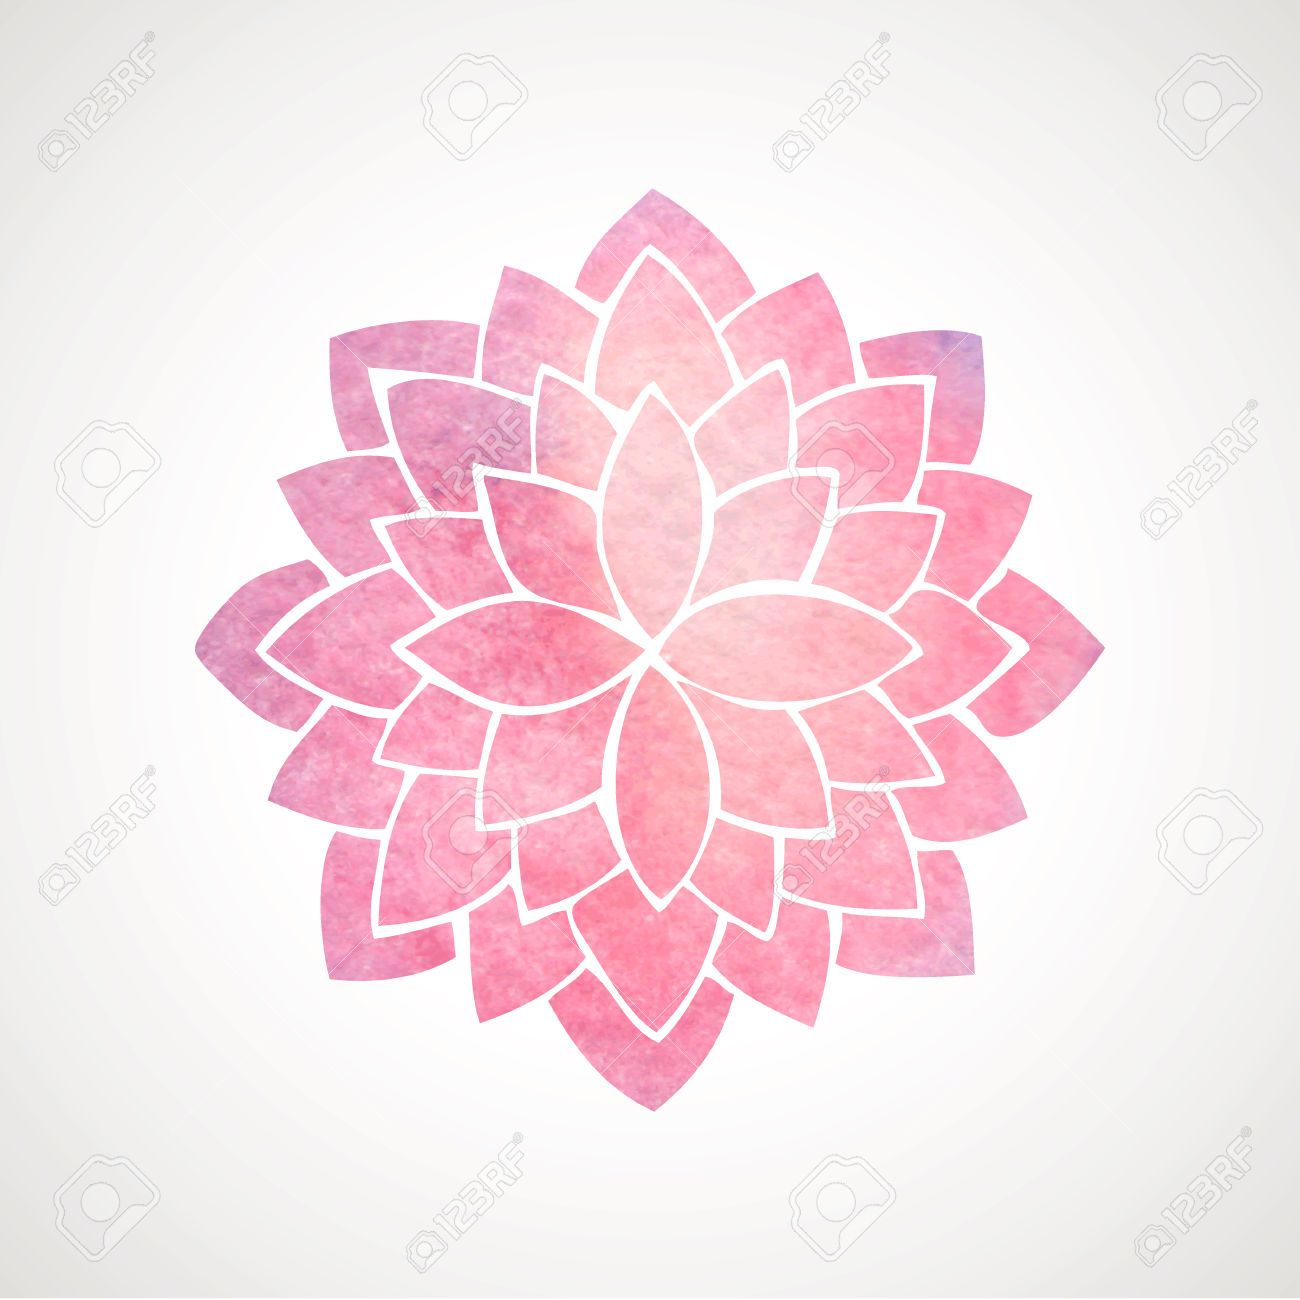 Pin by sean kenney on flowas pinterest white lotus flower white photo about watercolor pink lotus indian oriental circled element for design flower pattern on white background izmirmasajfo